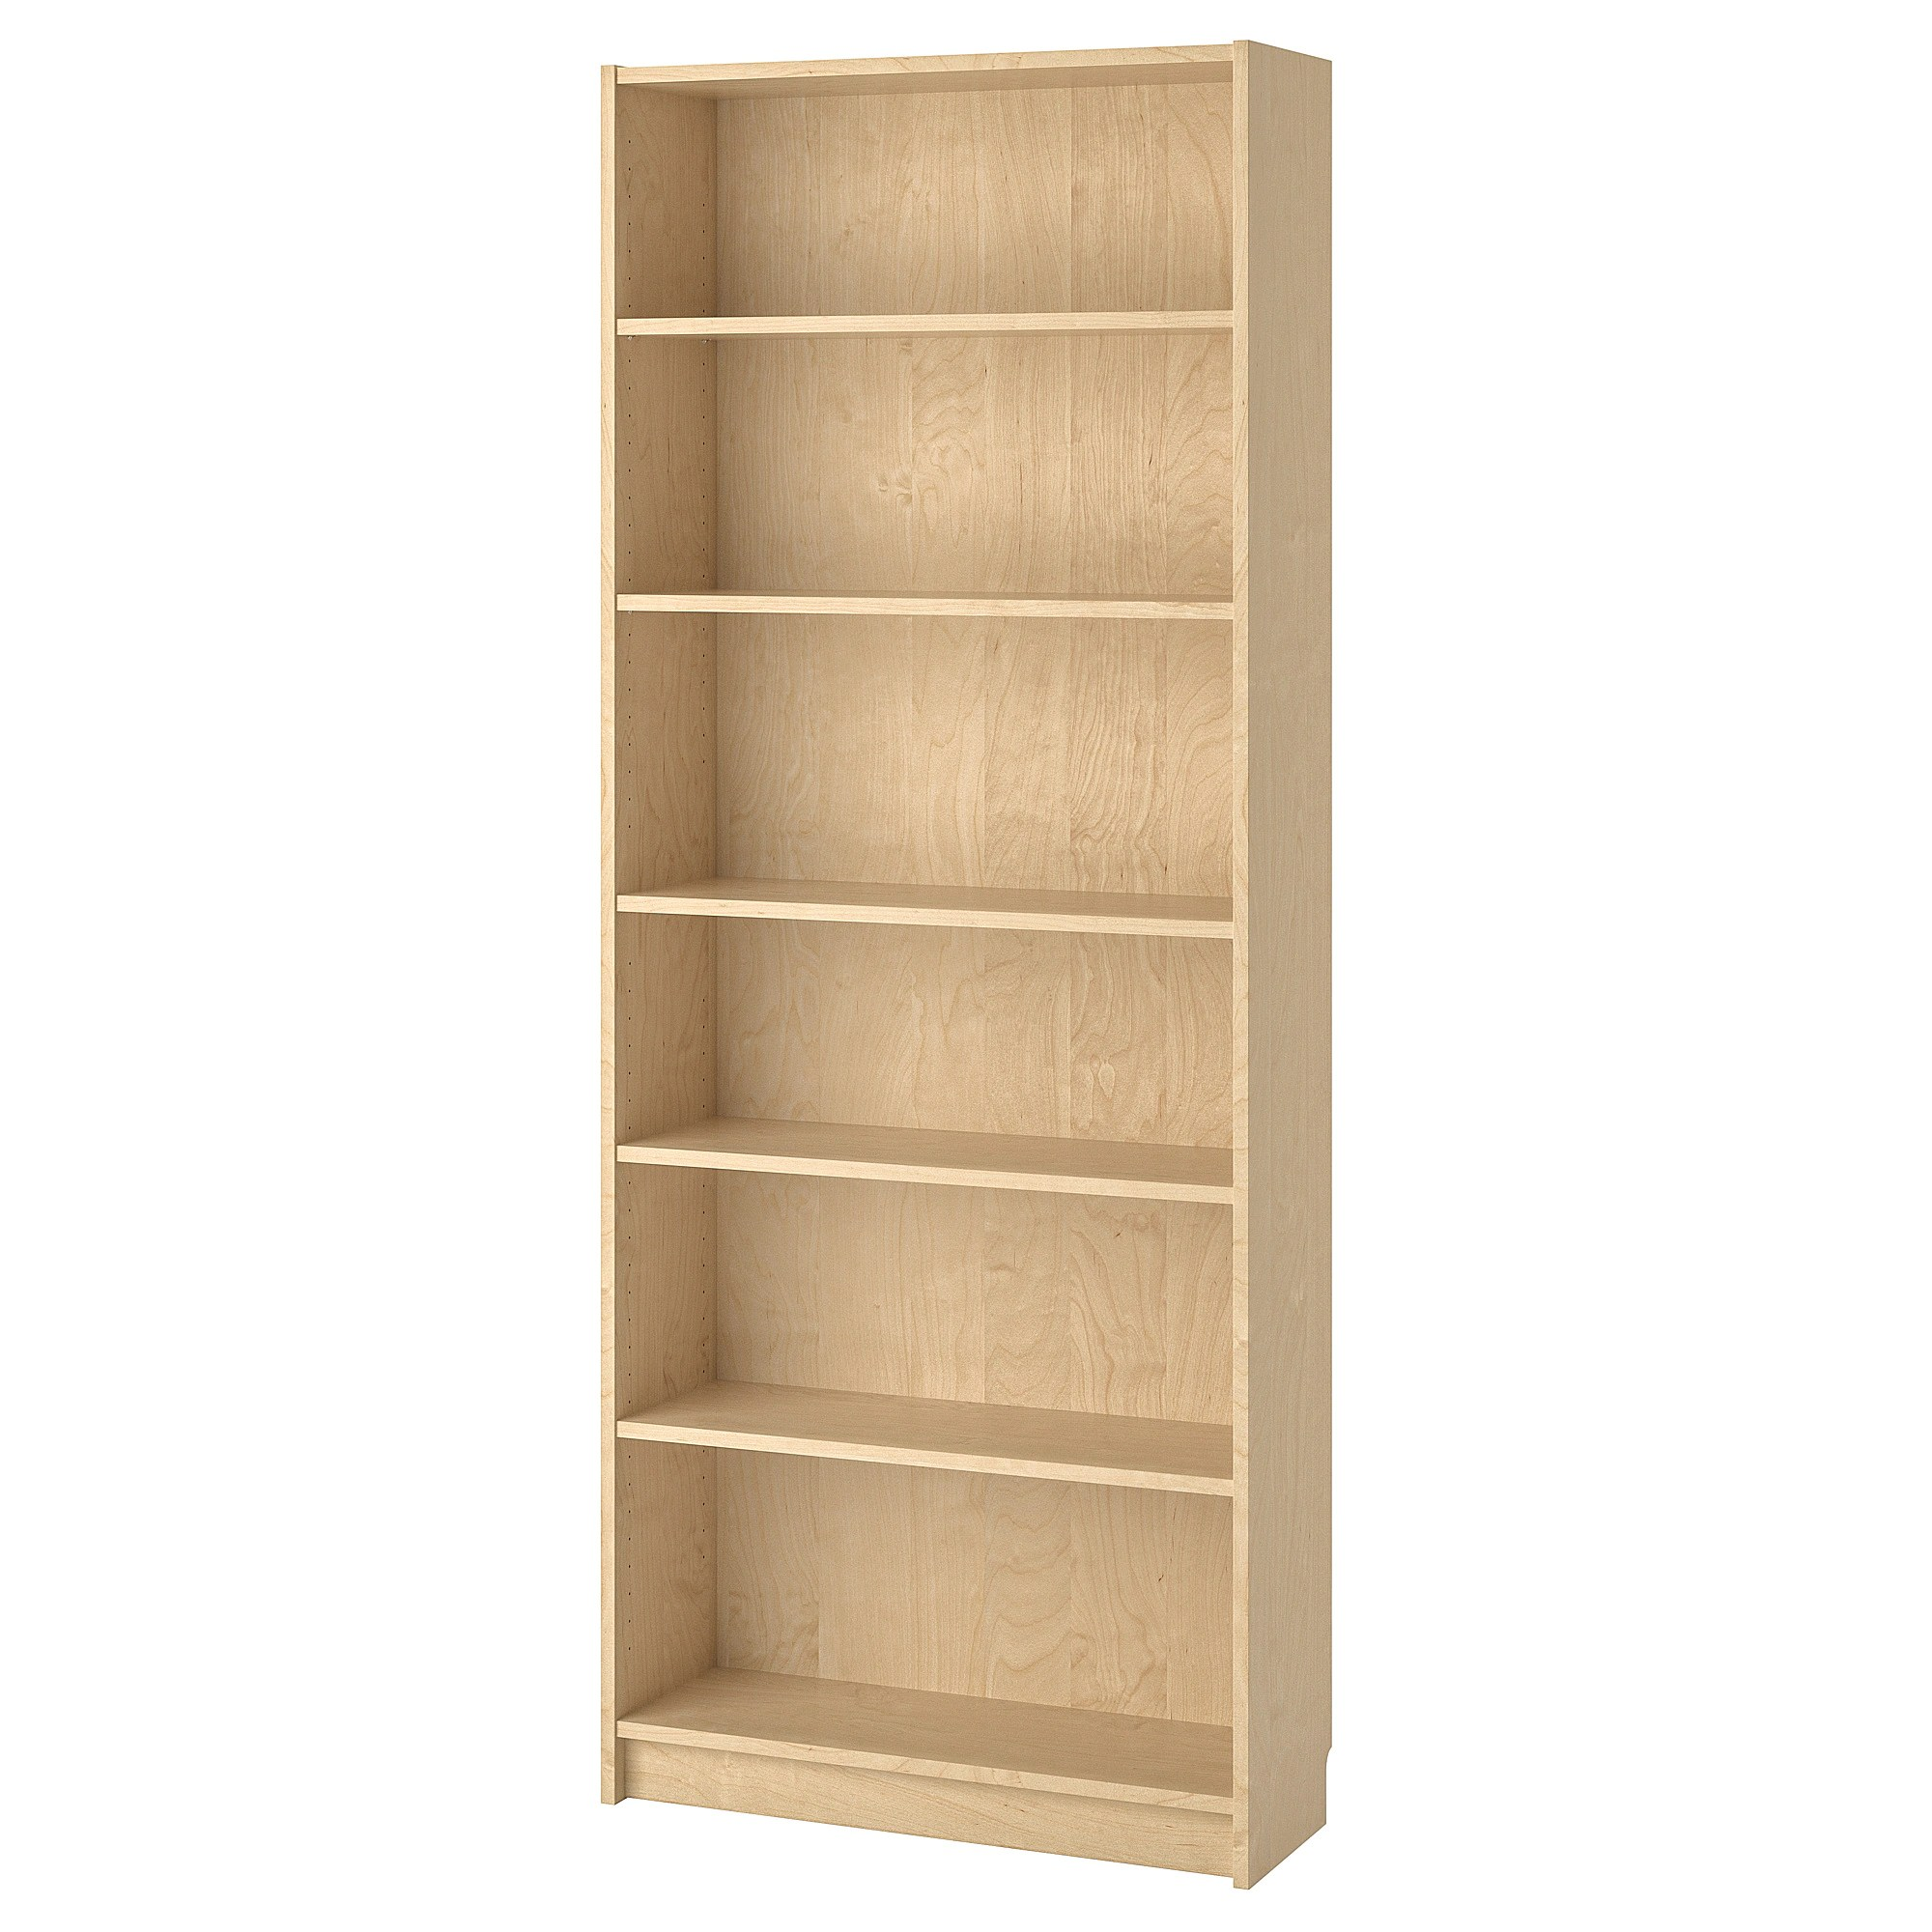 Ikea Küche Regal Holz Bücherregal Billy Birkenfurnier